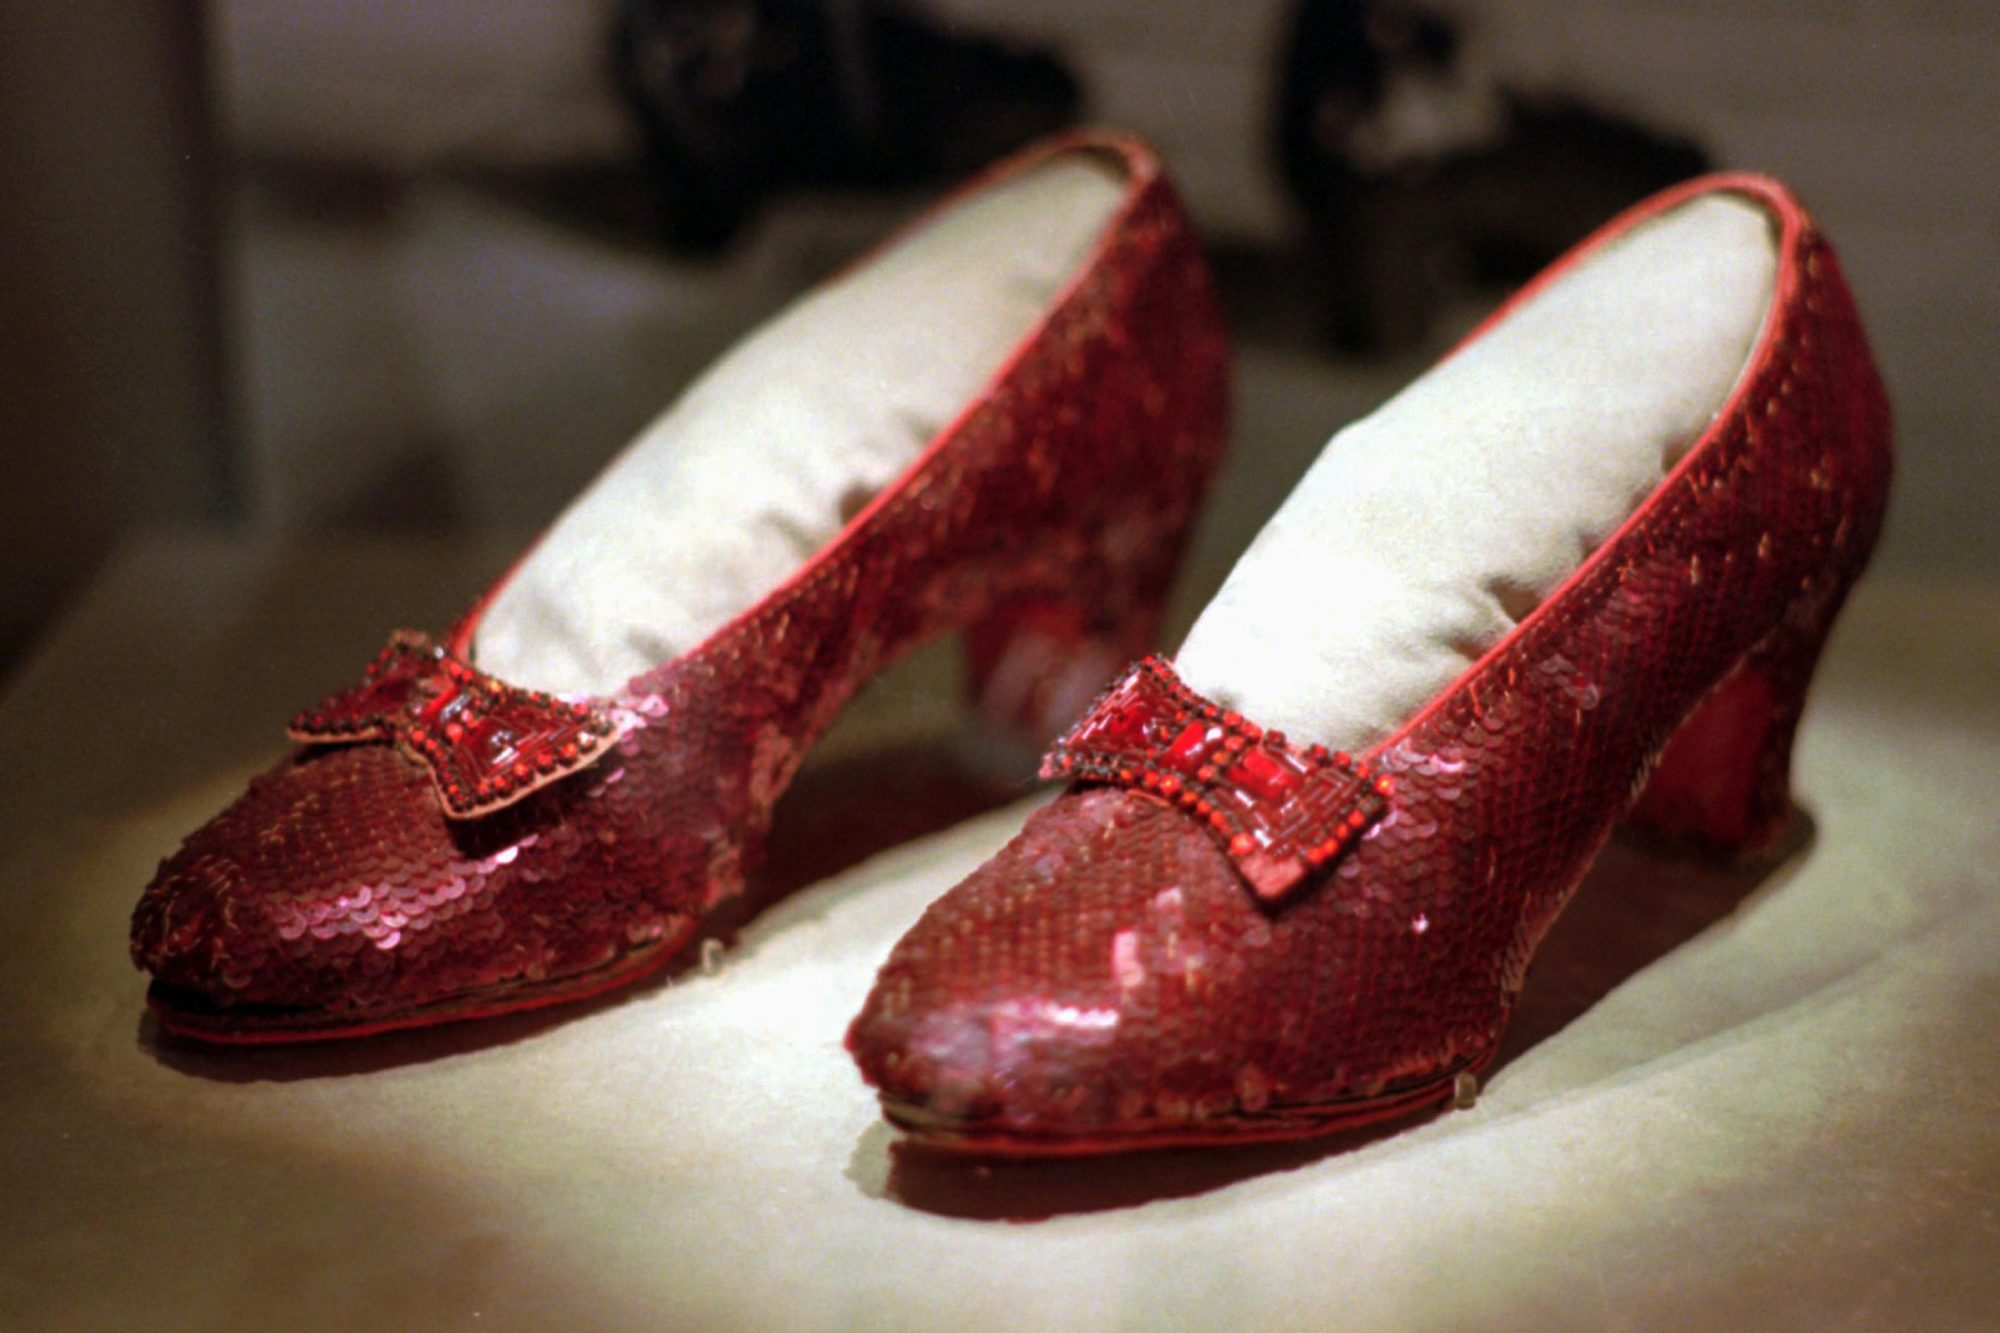 The Wizard of Oz's Ruby Slippers Became Iconic 80 Years Ago — And for Years, One Pair Was Lost shutterstock_editorial_6511615a_huge